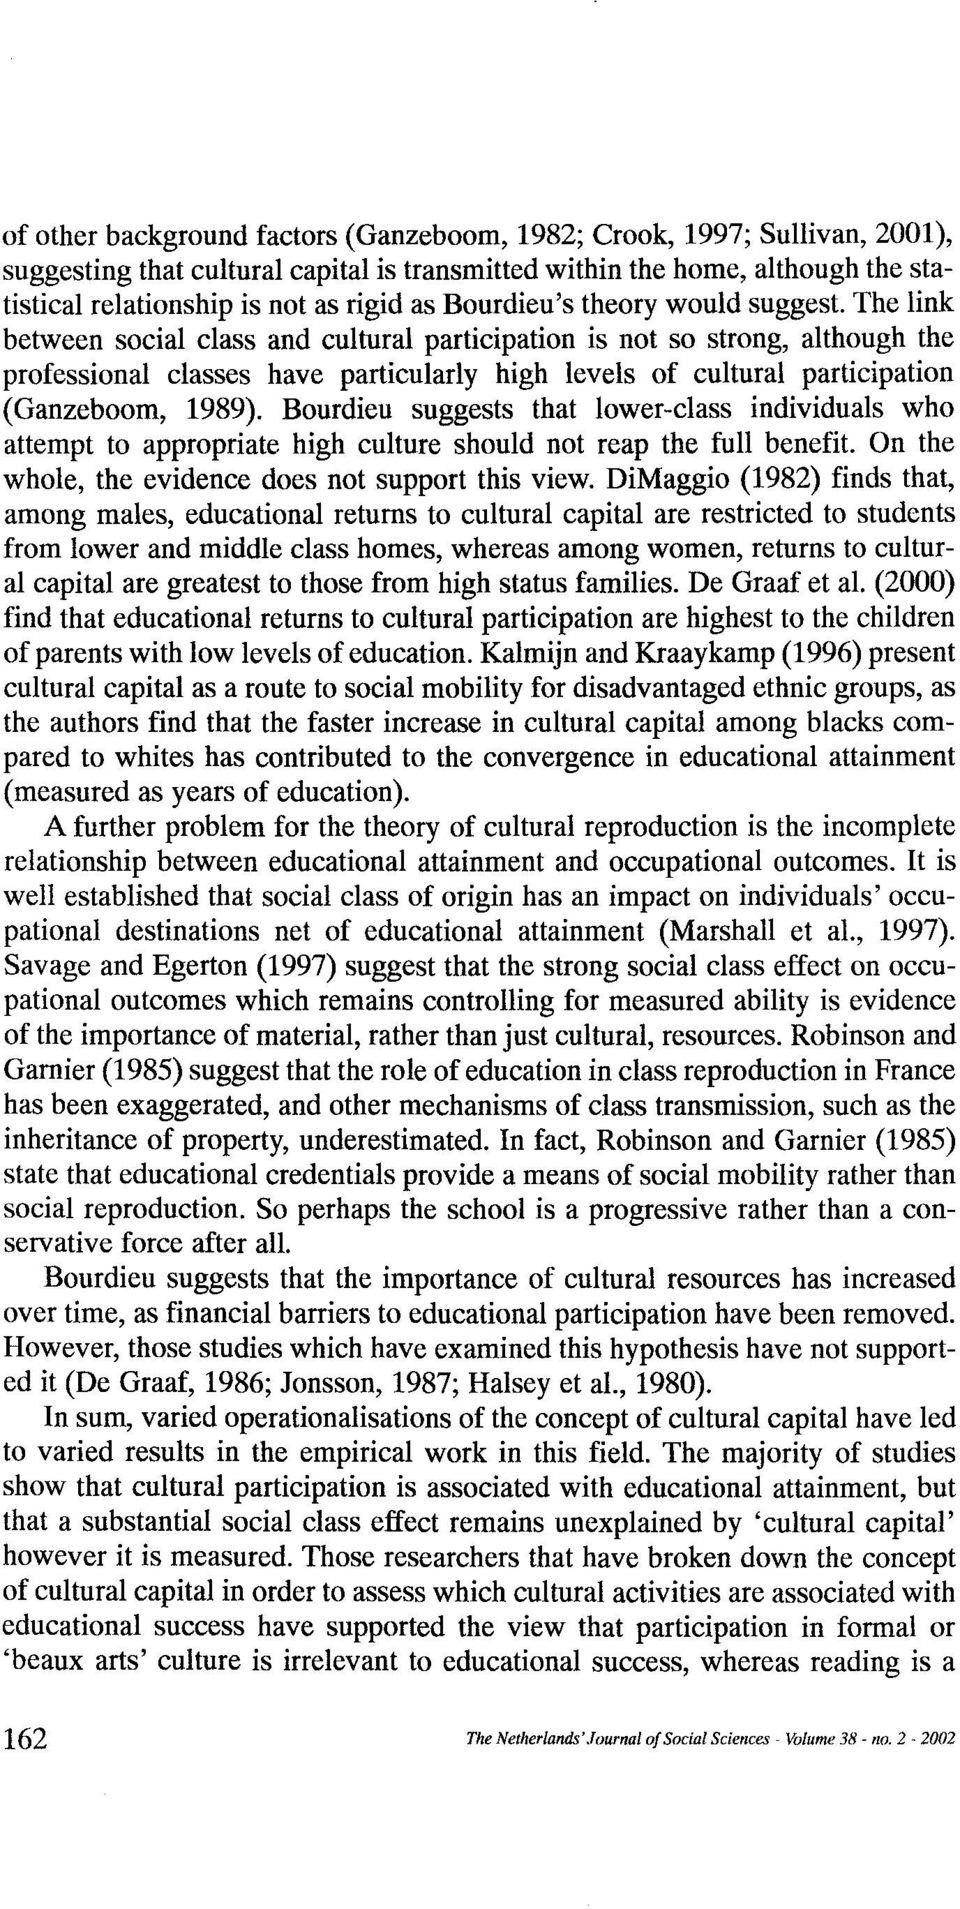 The link between social class and cultural participation is not so strong, although the professional classes have particularly high levels of cultural participation (Ganzeboom, 1989).